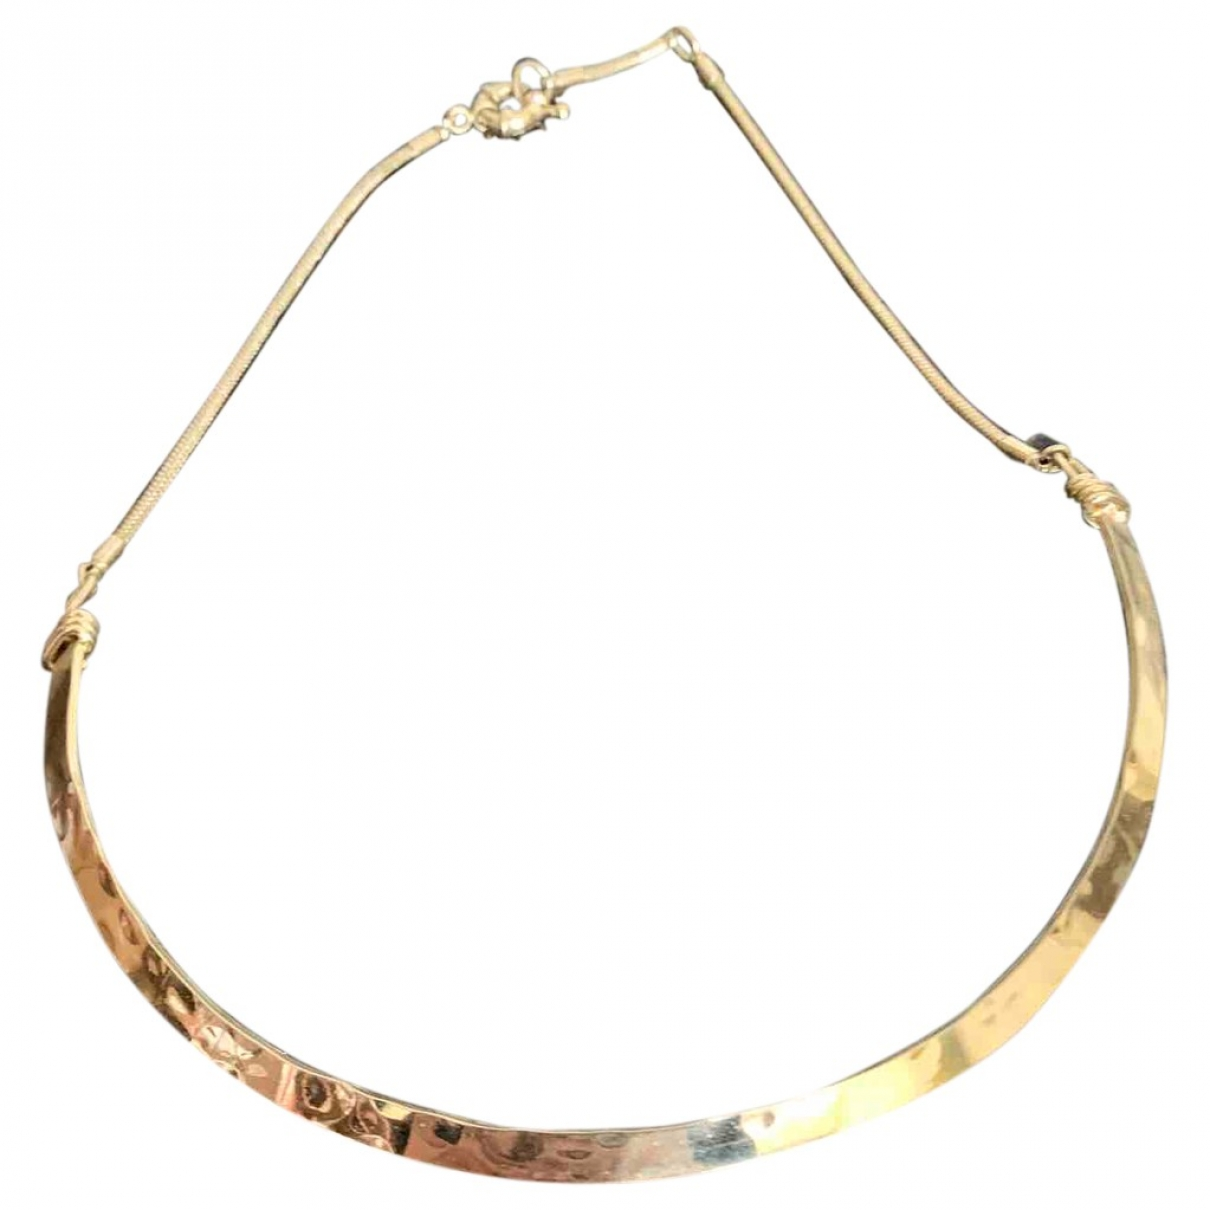 & Stories \N Gold Metal necklace for Women \N